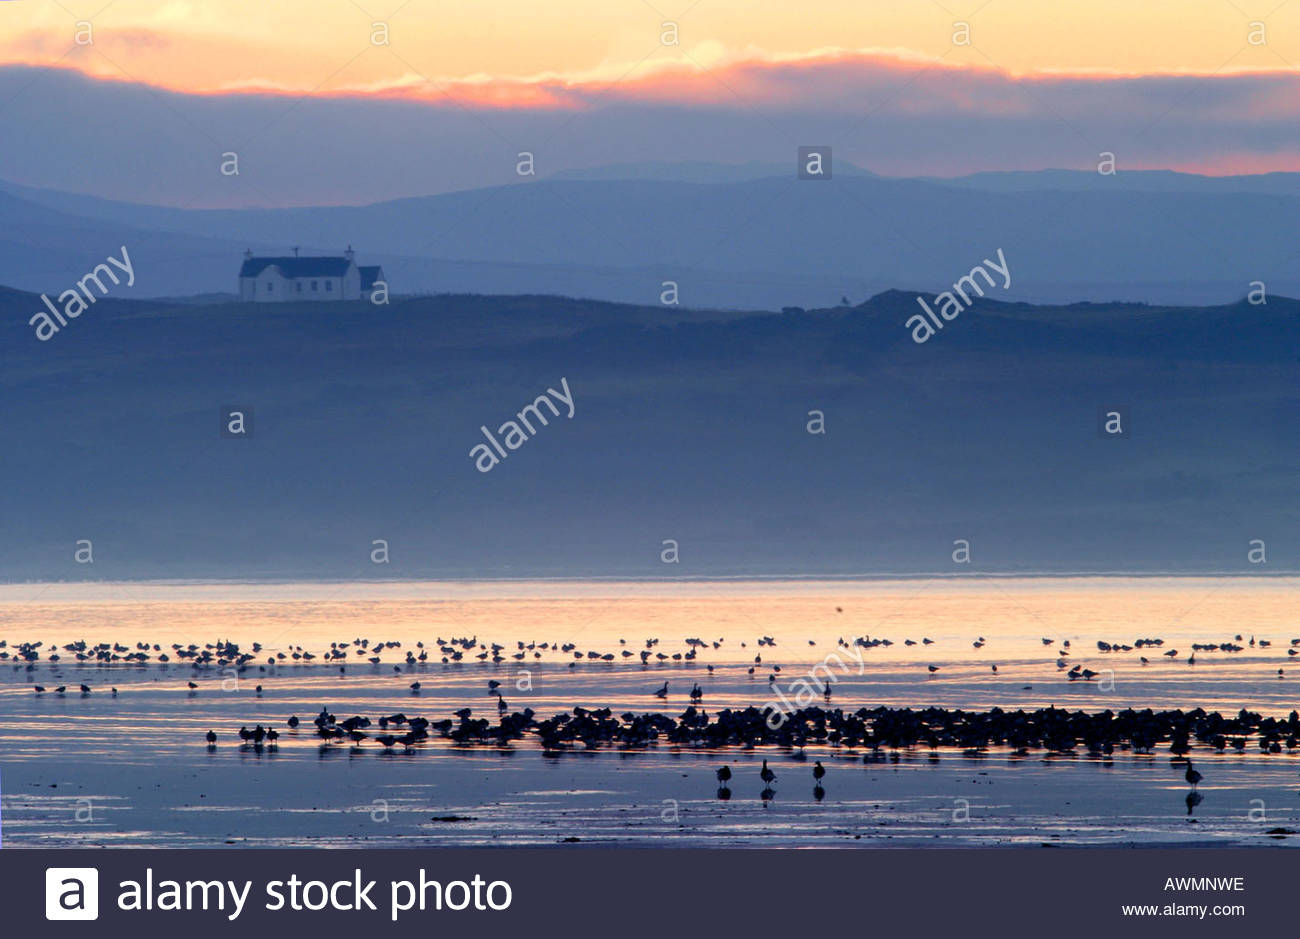 Islay at Dawn with Barnacle Geese in Bay - Stock Image